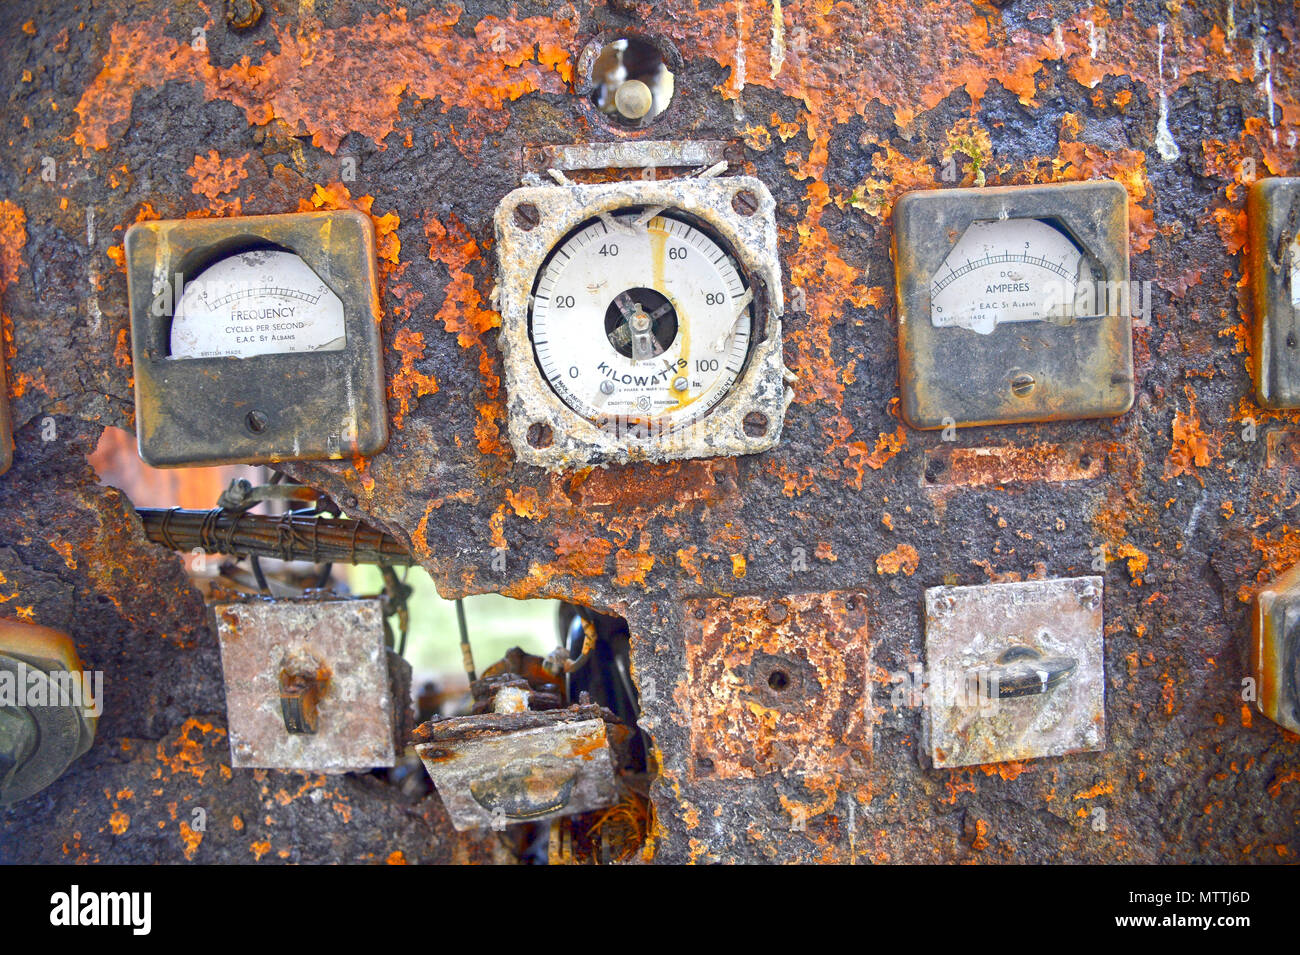 Old control panel rotted away with broken dials and falling